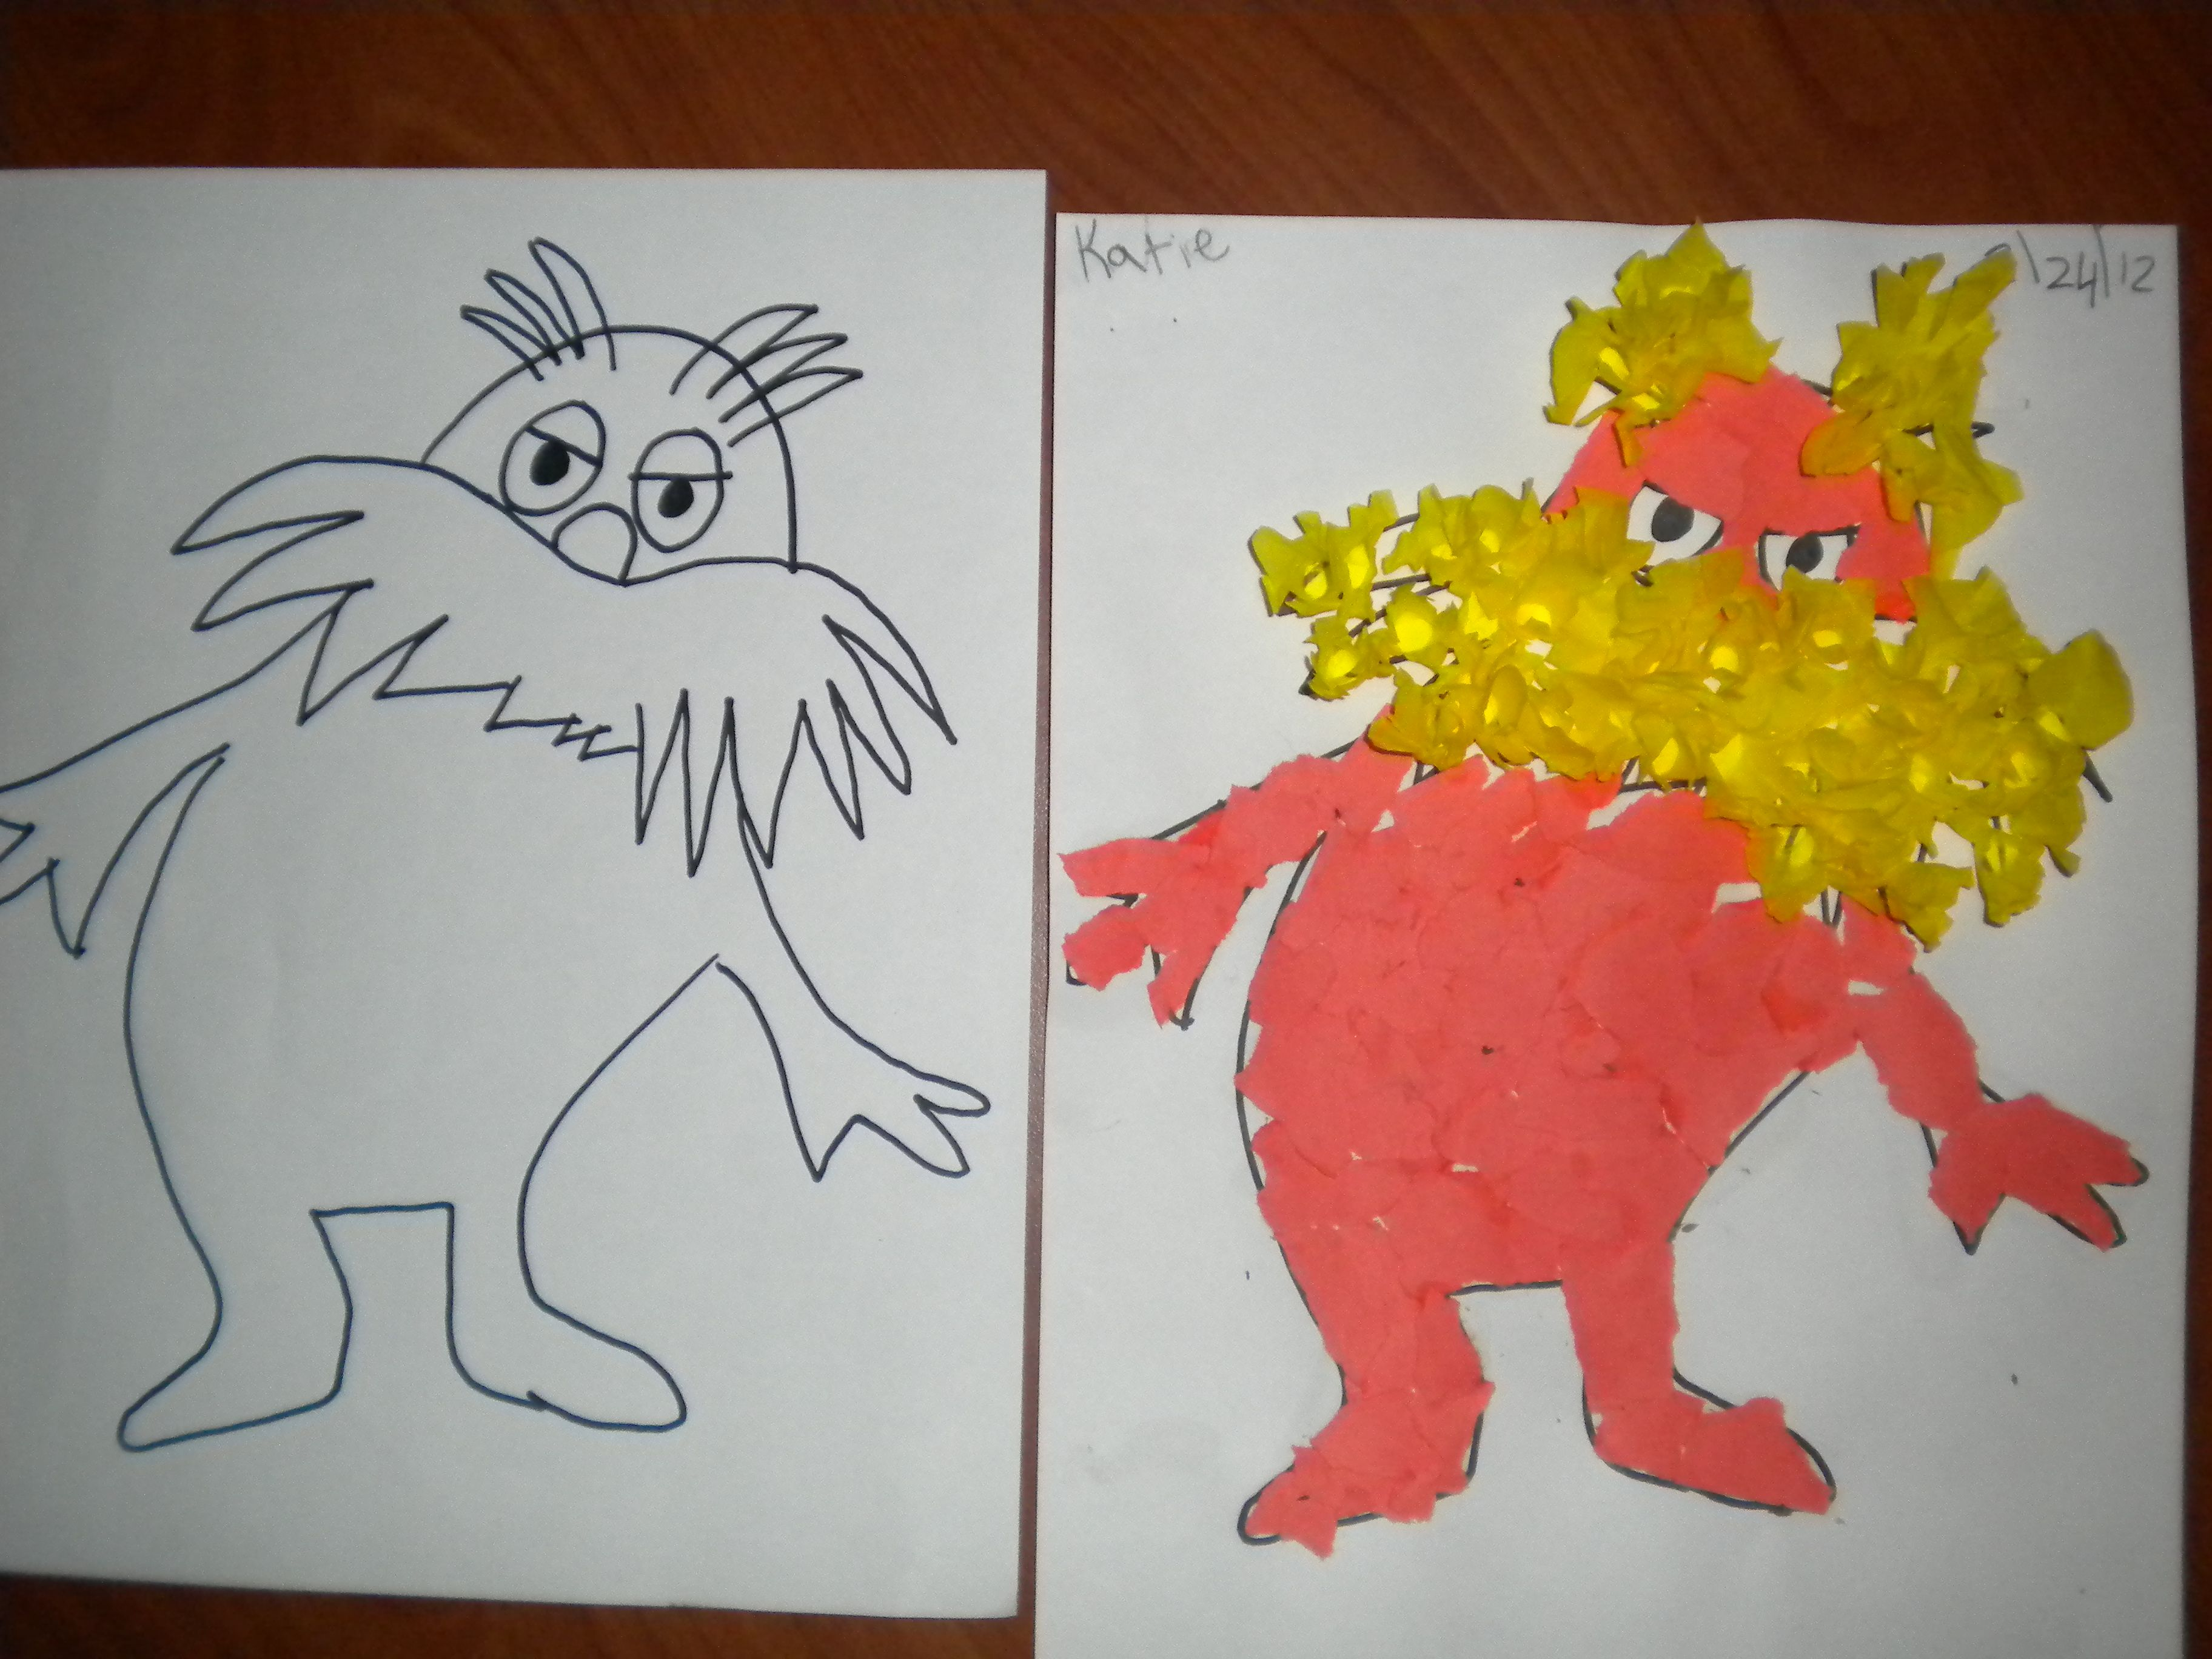 Worksheets Student Worksheet To Accompany The Lorax lorax art i created the outline of on left left